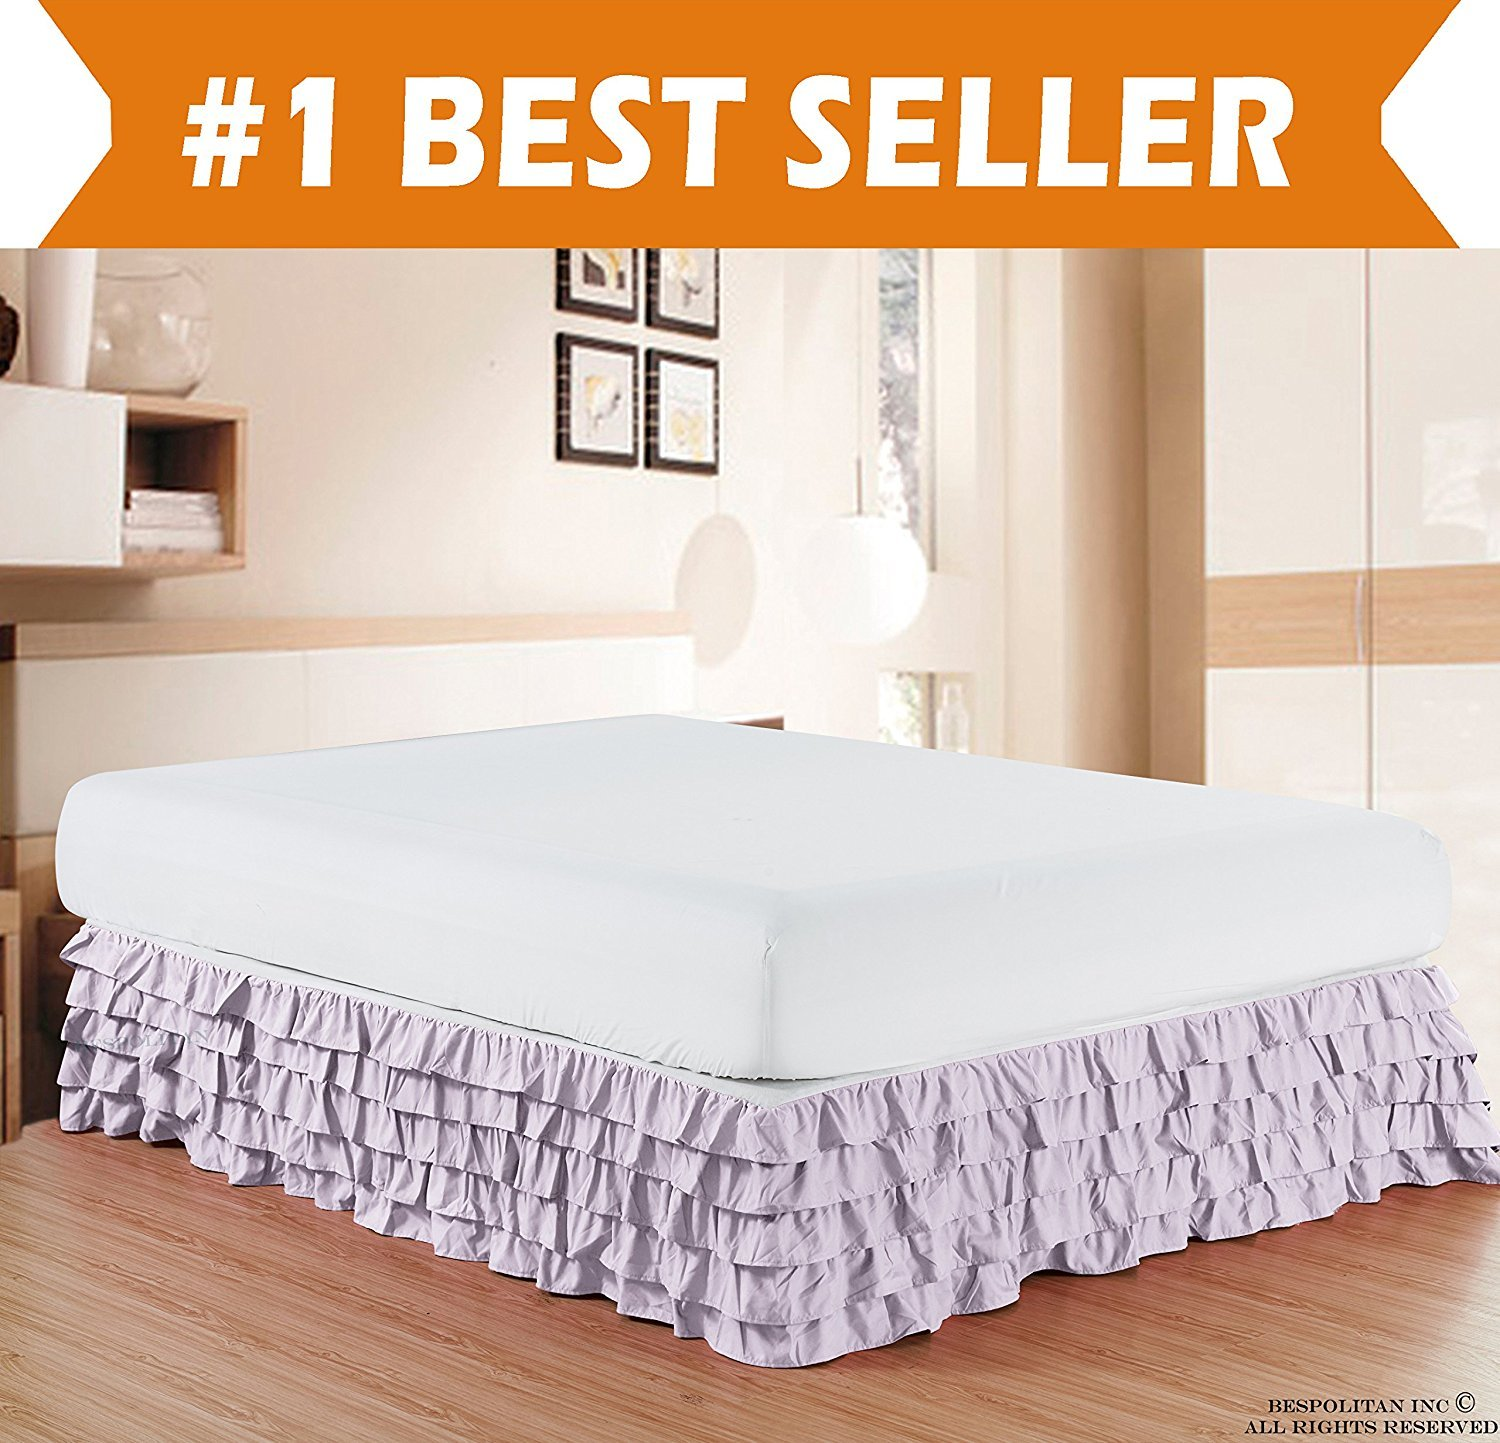 Cheap Black Bed Skirt Twin Find Black Bed Skirt Twin Deals On Line